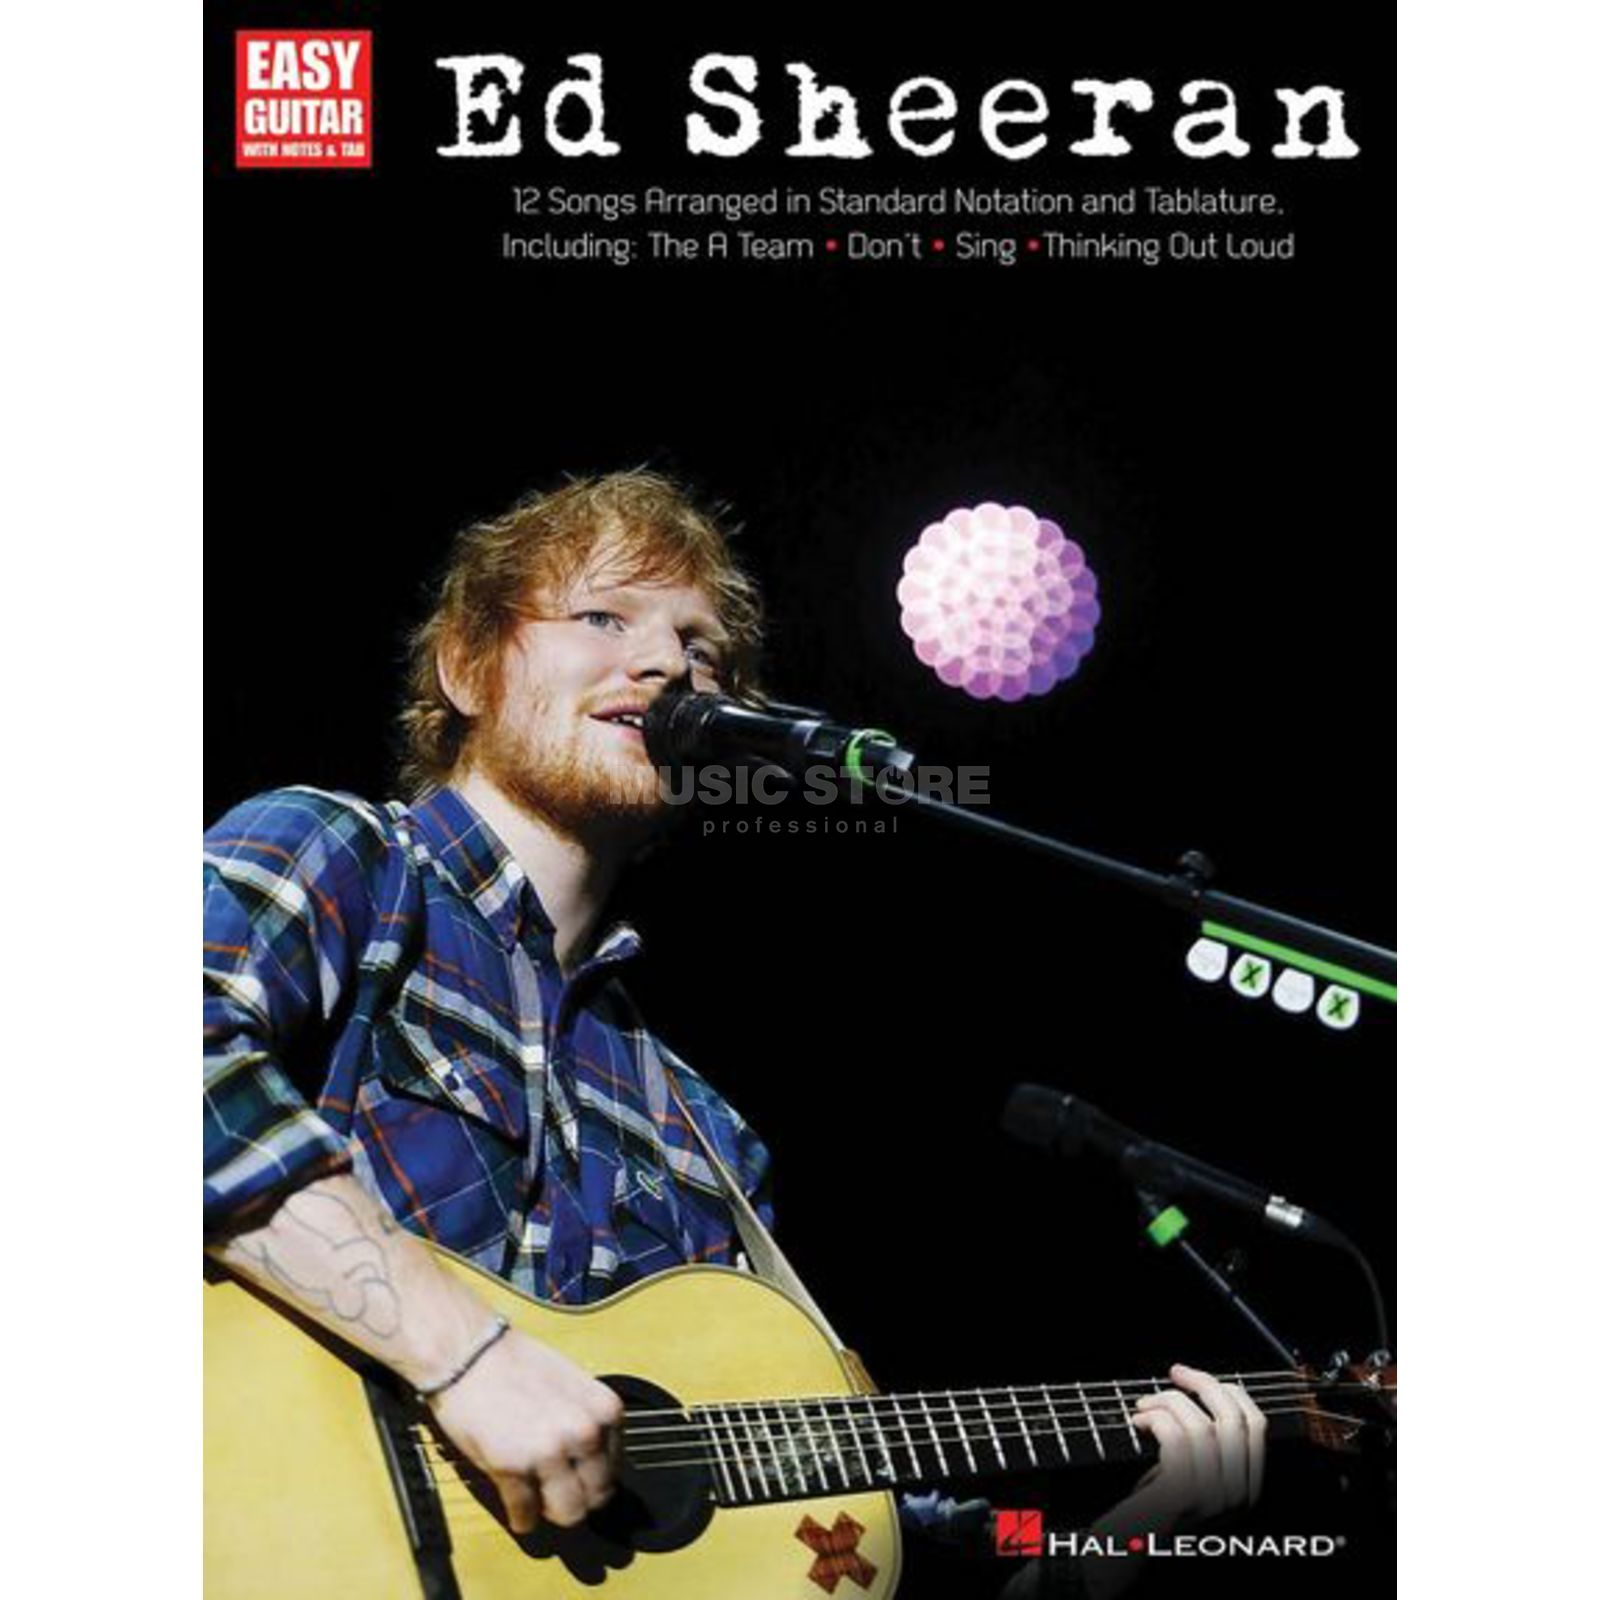 Hal Leonard Ed Sheeran For Easy Guitar Produktbild